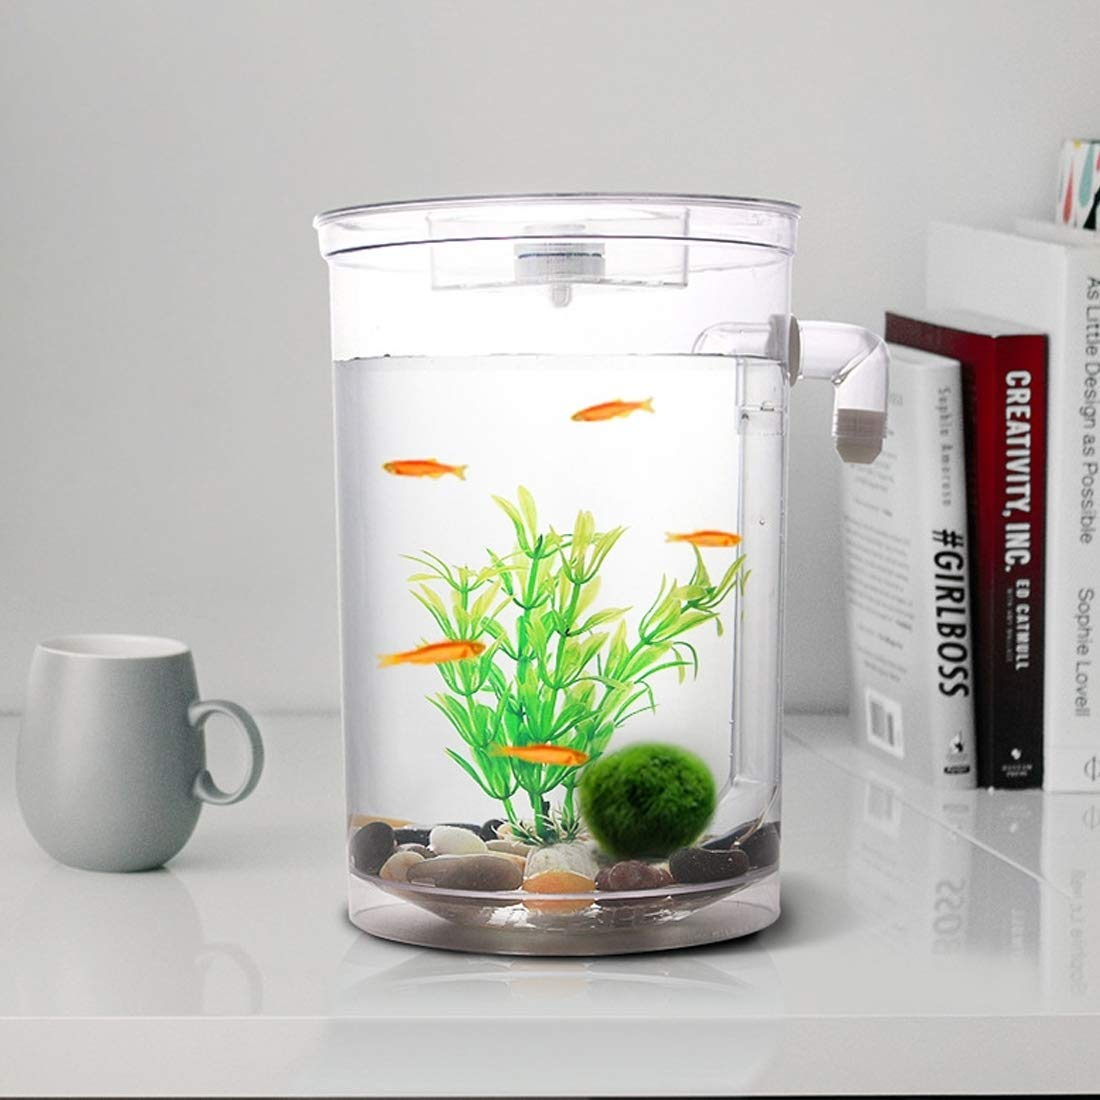 Perfect Home Round Plastic Creative Ecological Desktop Mini Aquarium gold Fish Bowl, Lazy Water Tank with Cobblestone, Tree Plant Grass, LED Light and Water Outlet Durable